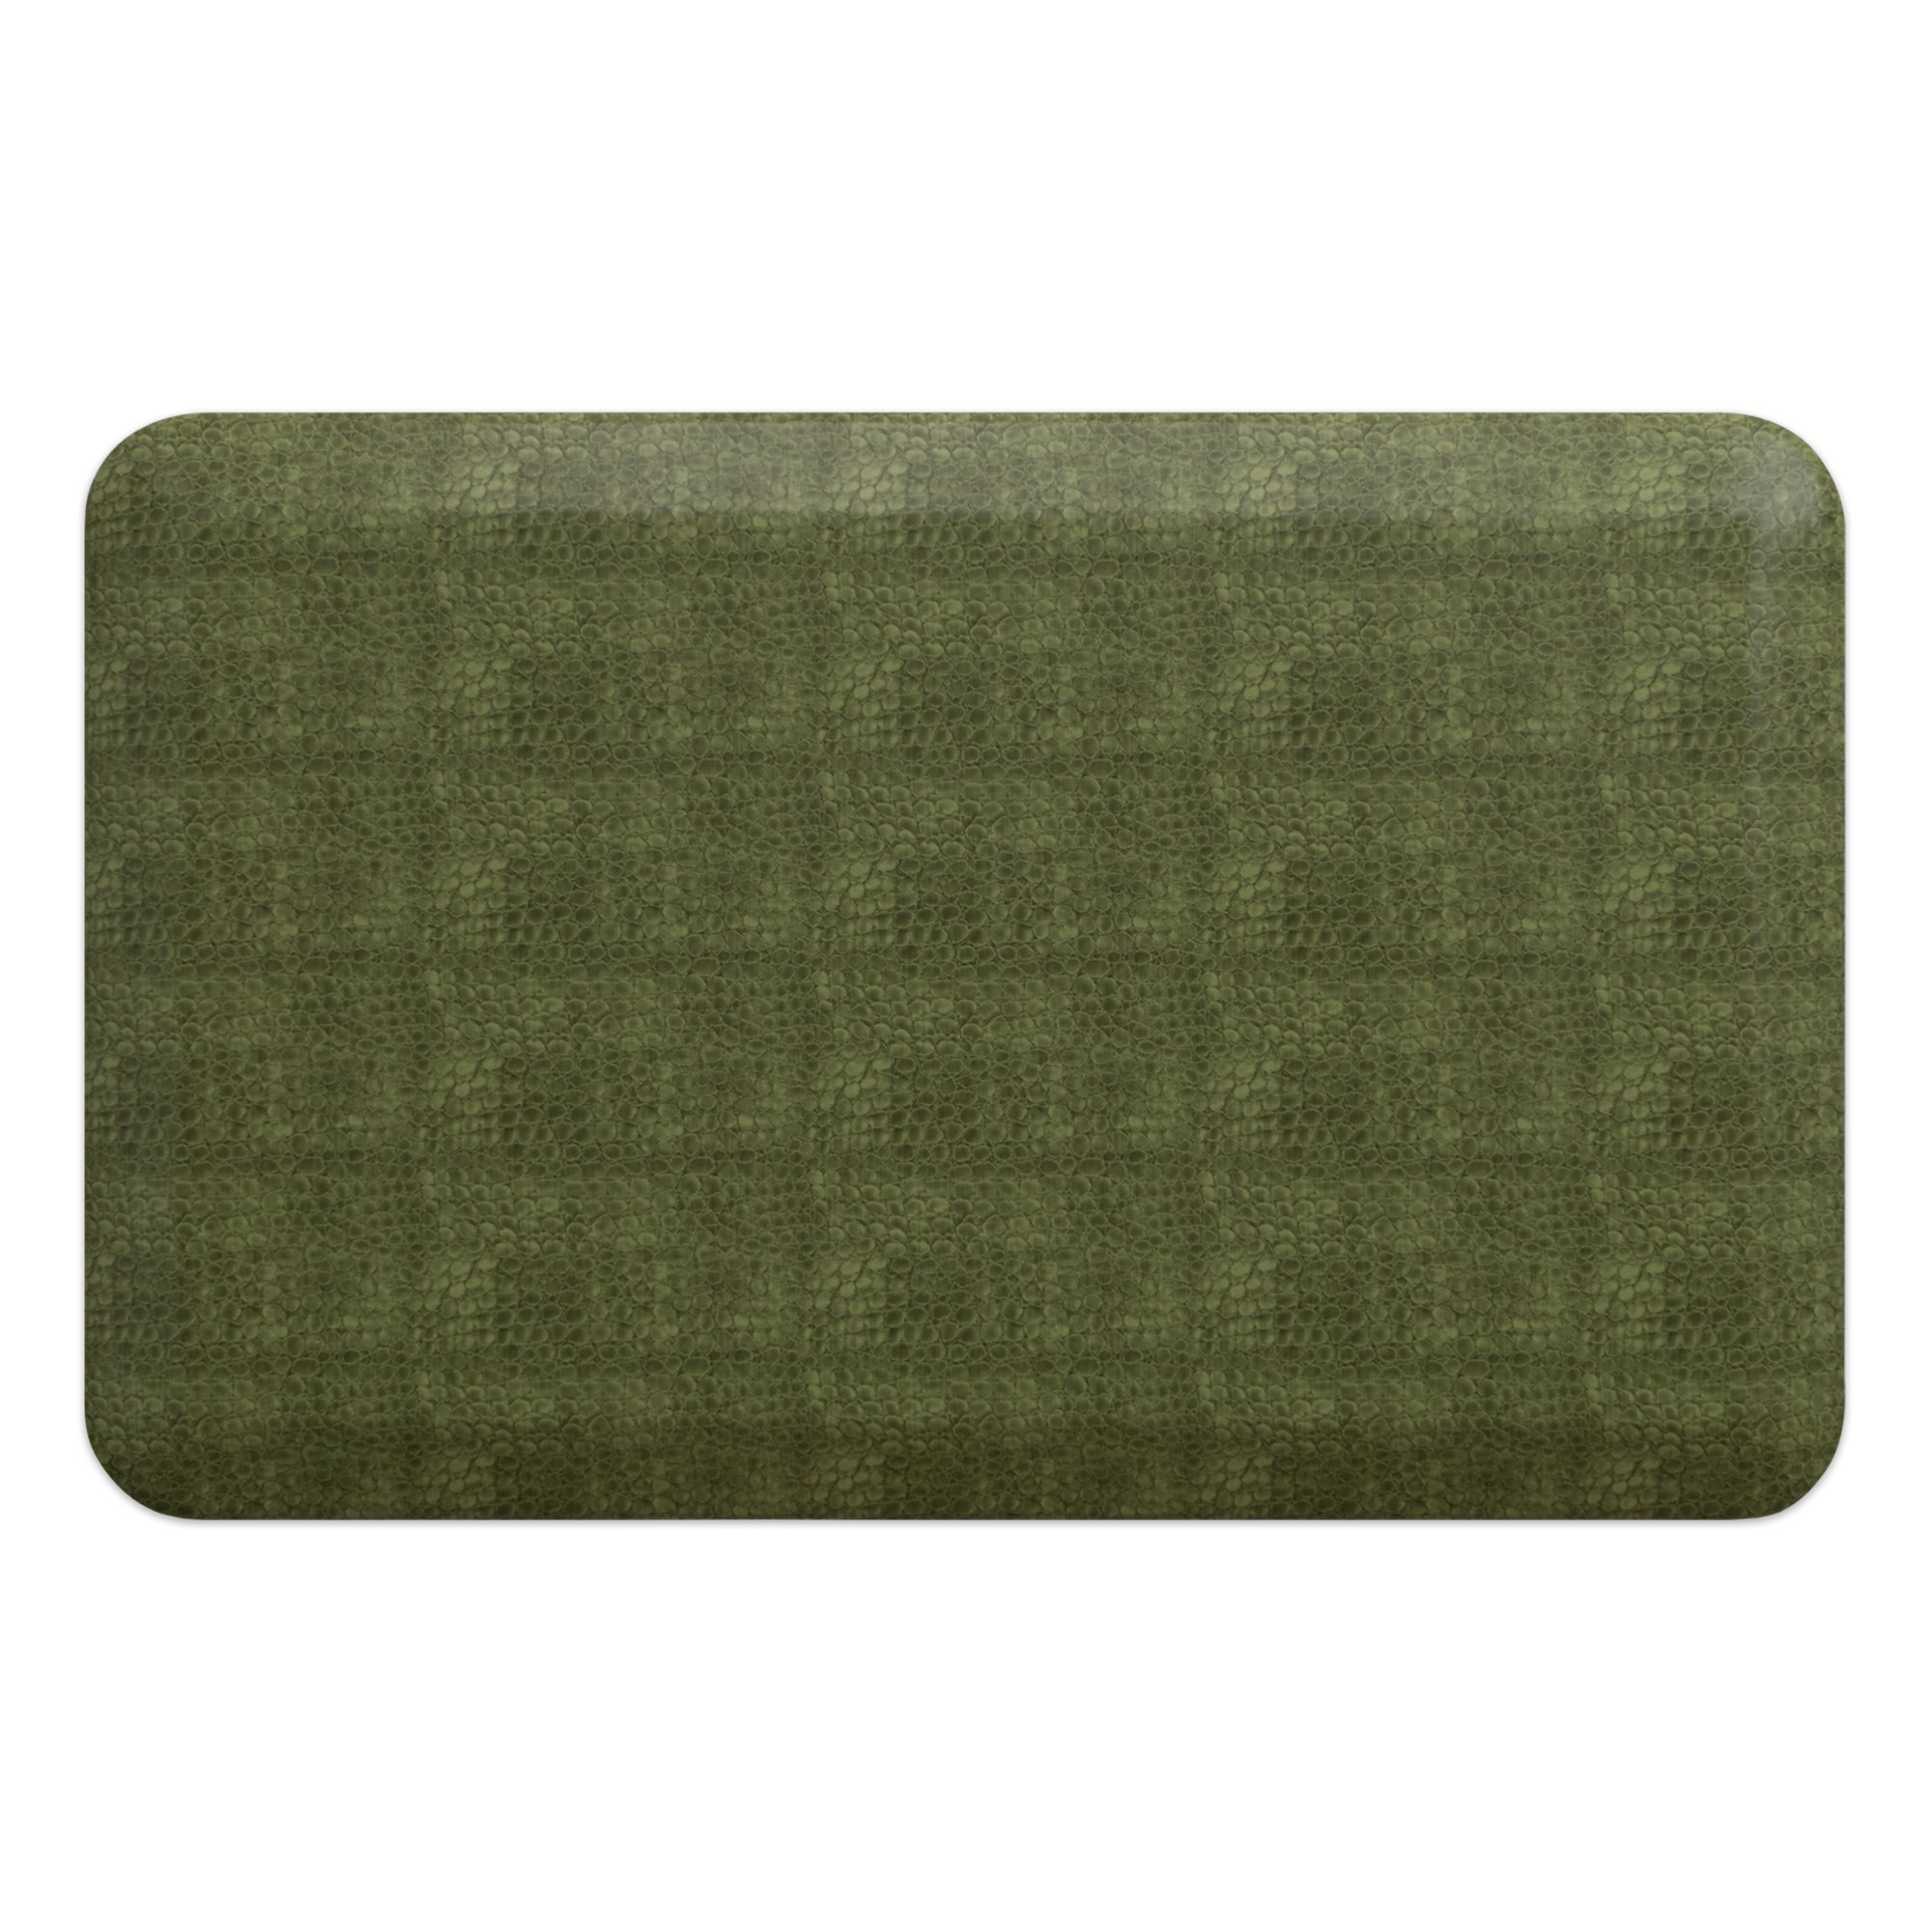 """NewLife by GelPro Anti-Fatigue Designer Comfort Kitchen Floor Mat, 20x32"""", Pebble Palm Stain Resistant Surface with 3/4"""" Thick Ergo-foam Core for Health and Wellness"""